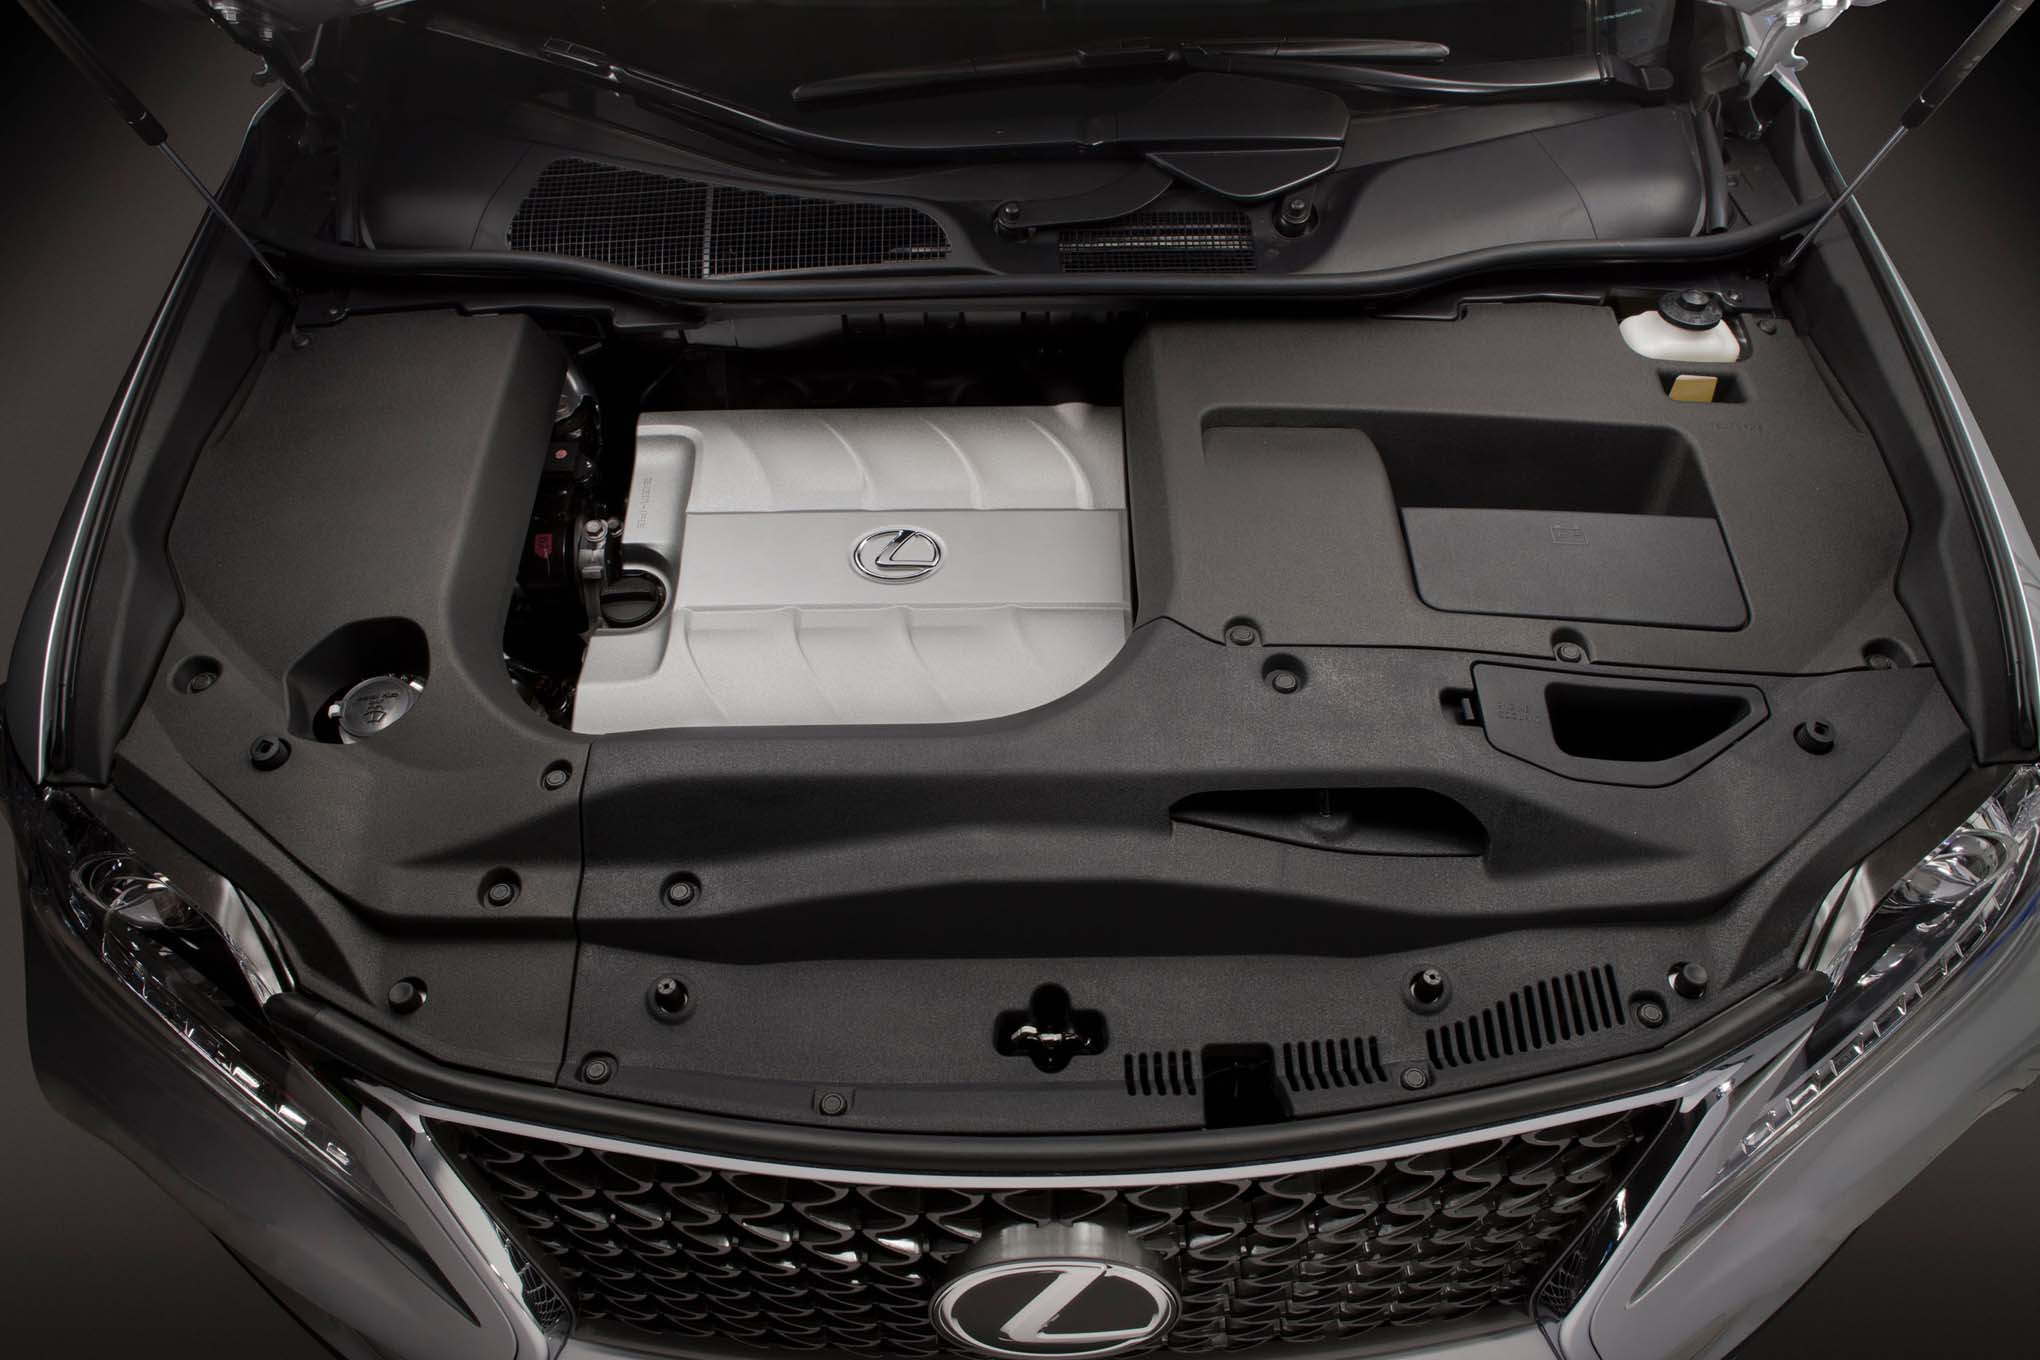 Lexus gx470 engine cover | Lexus GX470 Parts and Accessories at